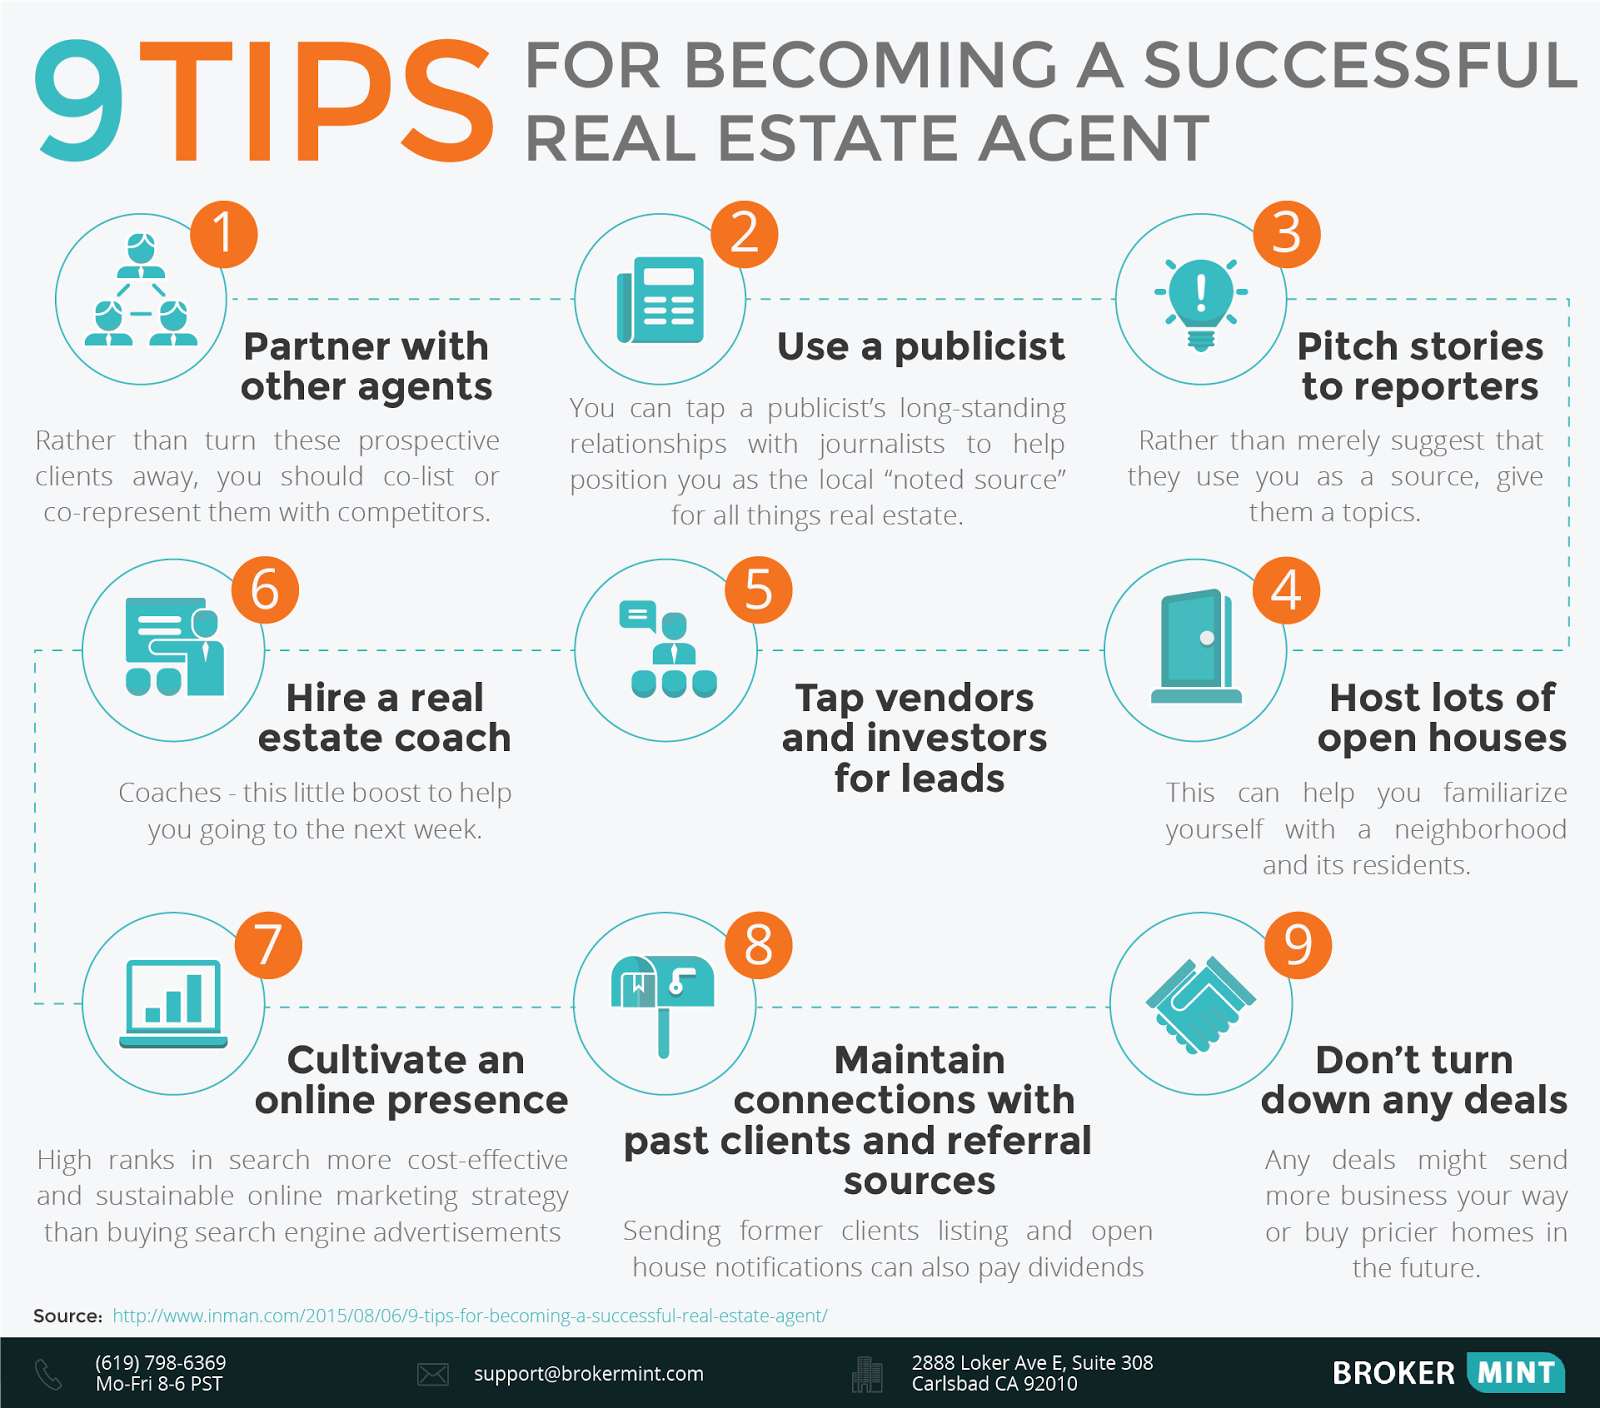 9 tips to become a successful real estate agent infographic 9 tips to become a successful real estate agent infographic fandeluxe Gallery